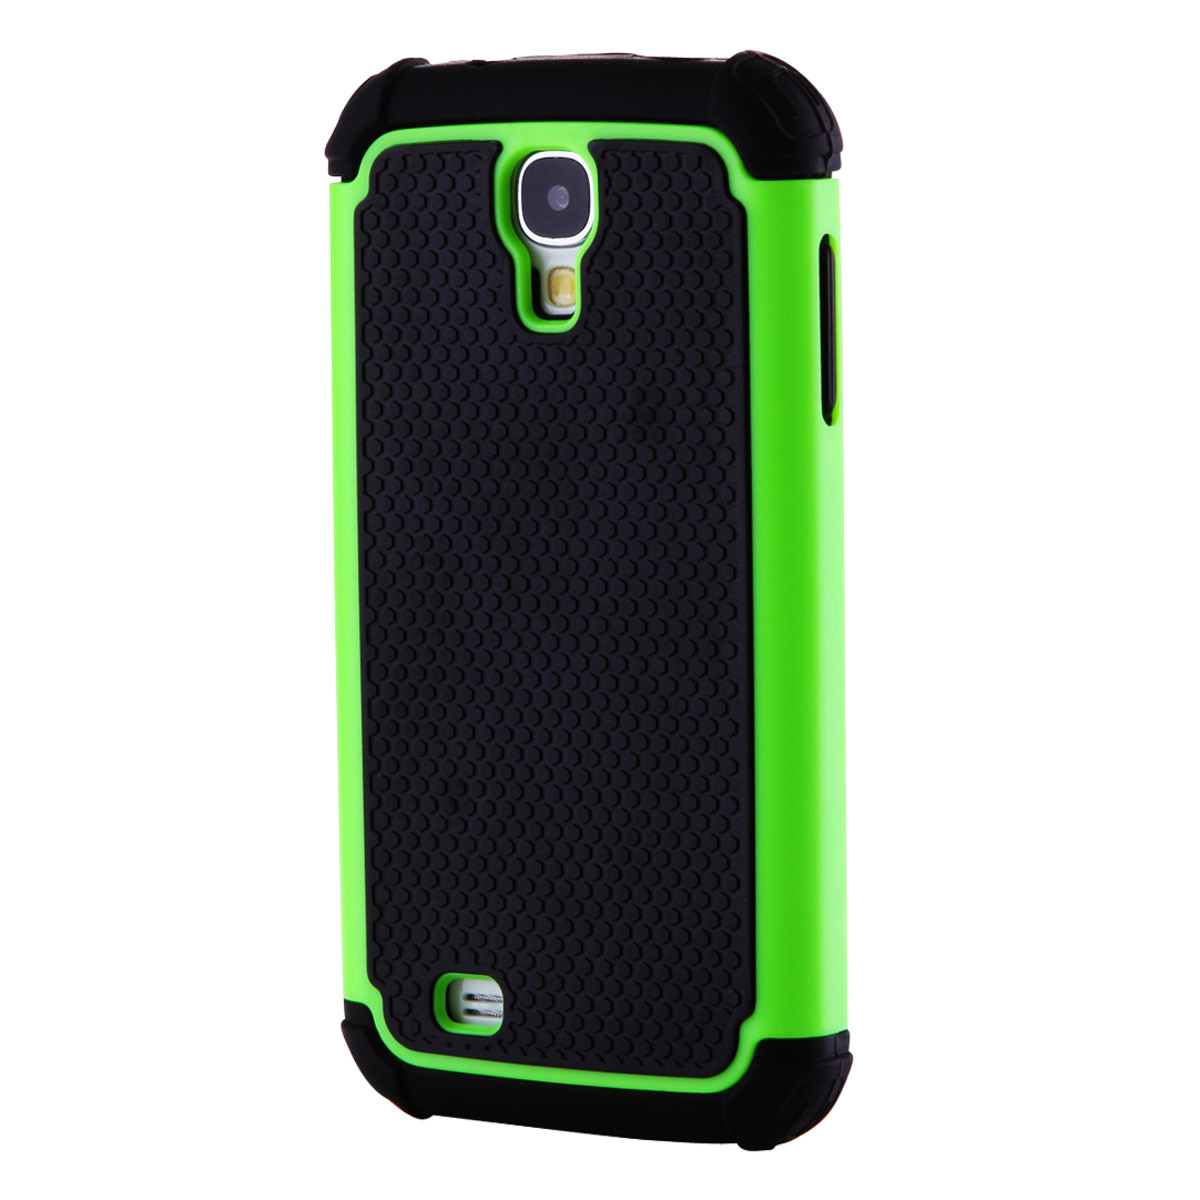 factory price cf494 f000c Defender Case for Samsung Galaxy S4 - Black and Green